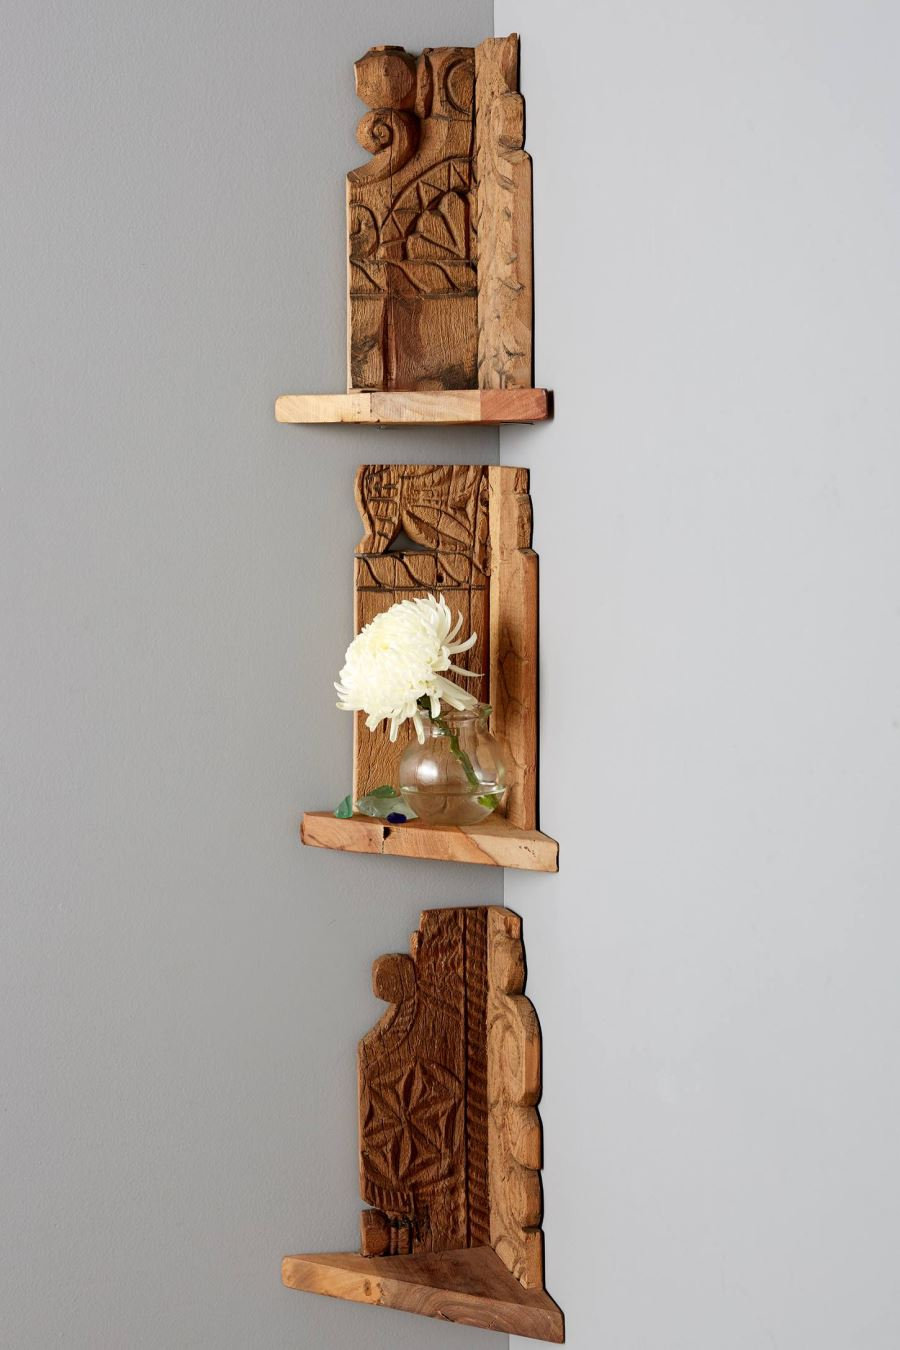 Wooden corner shelf from Anthropologie